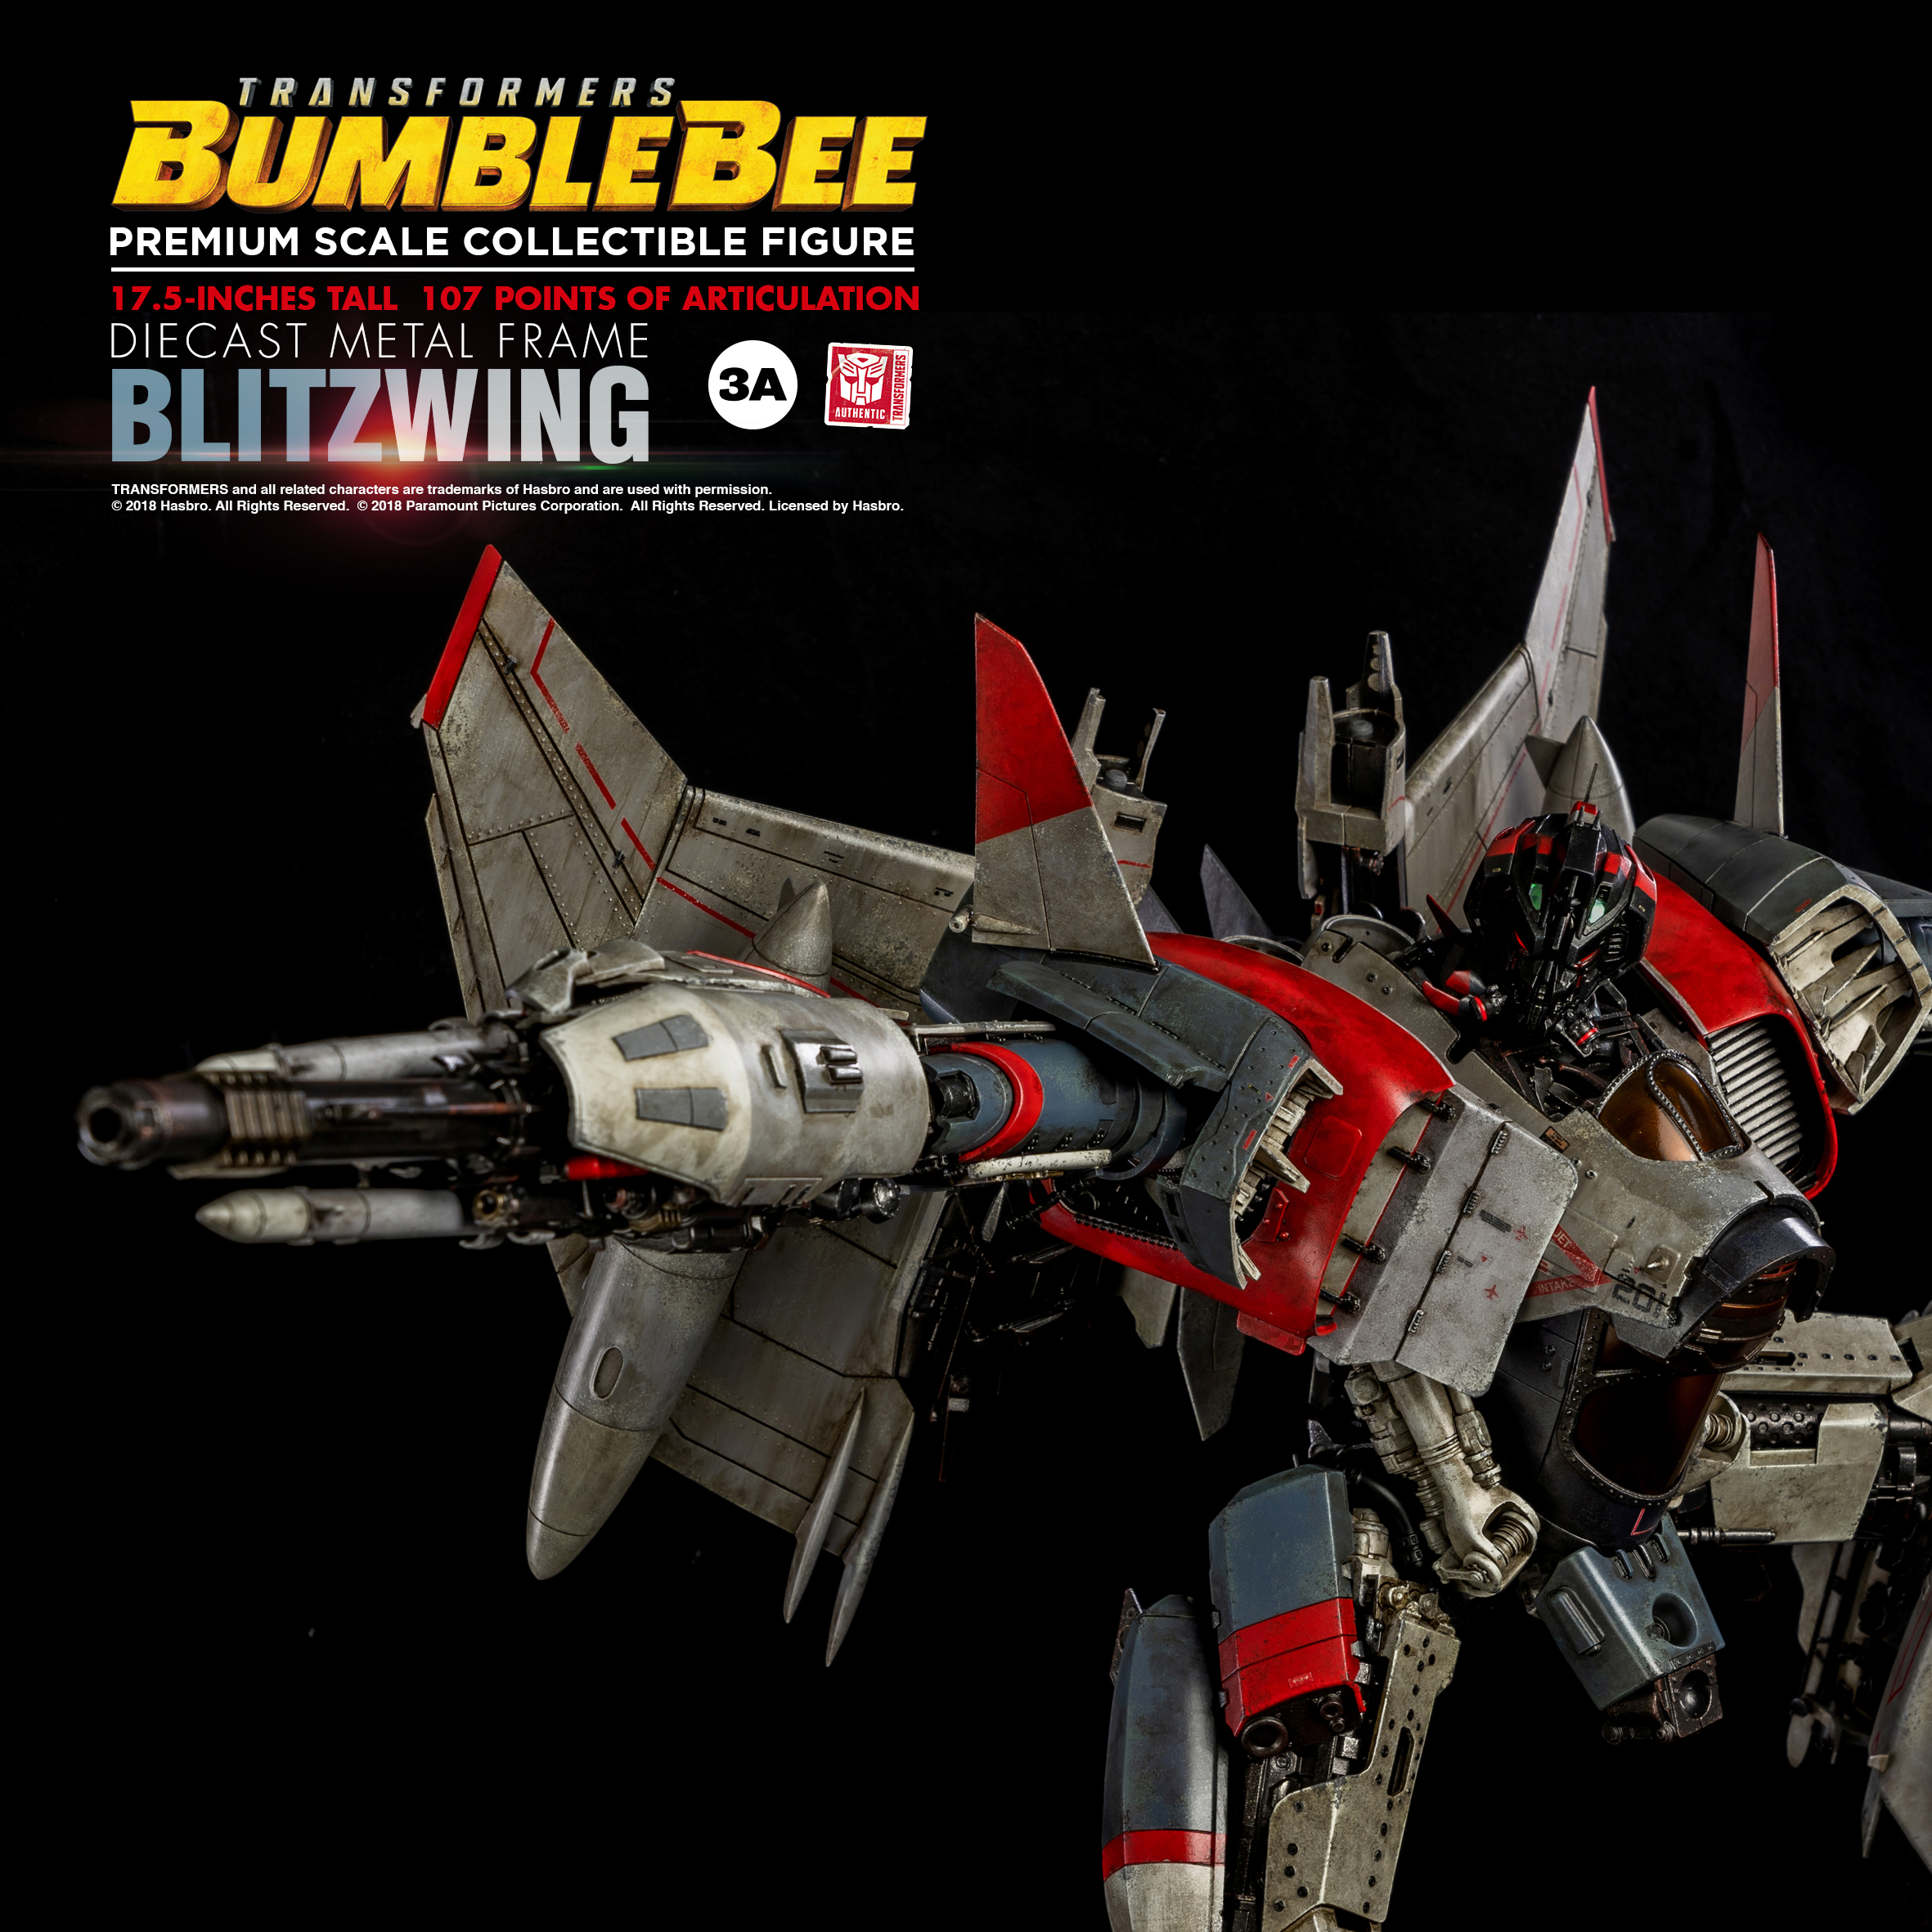 Blitzwing_PM_1146.jpg